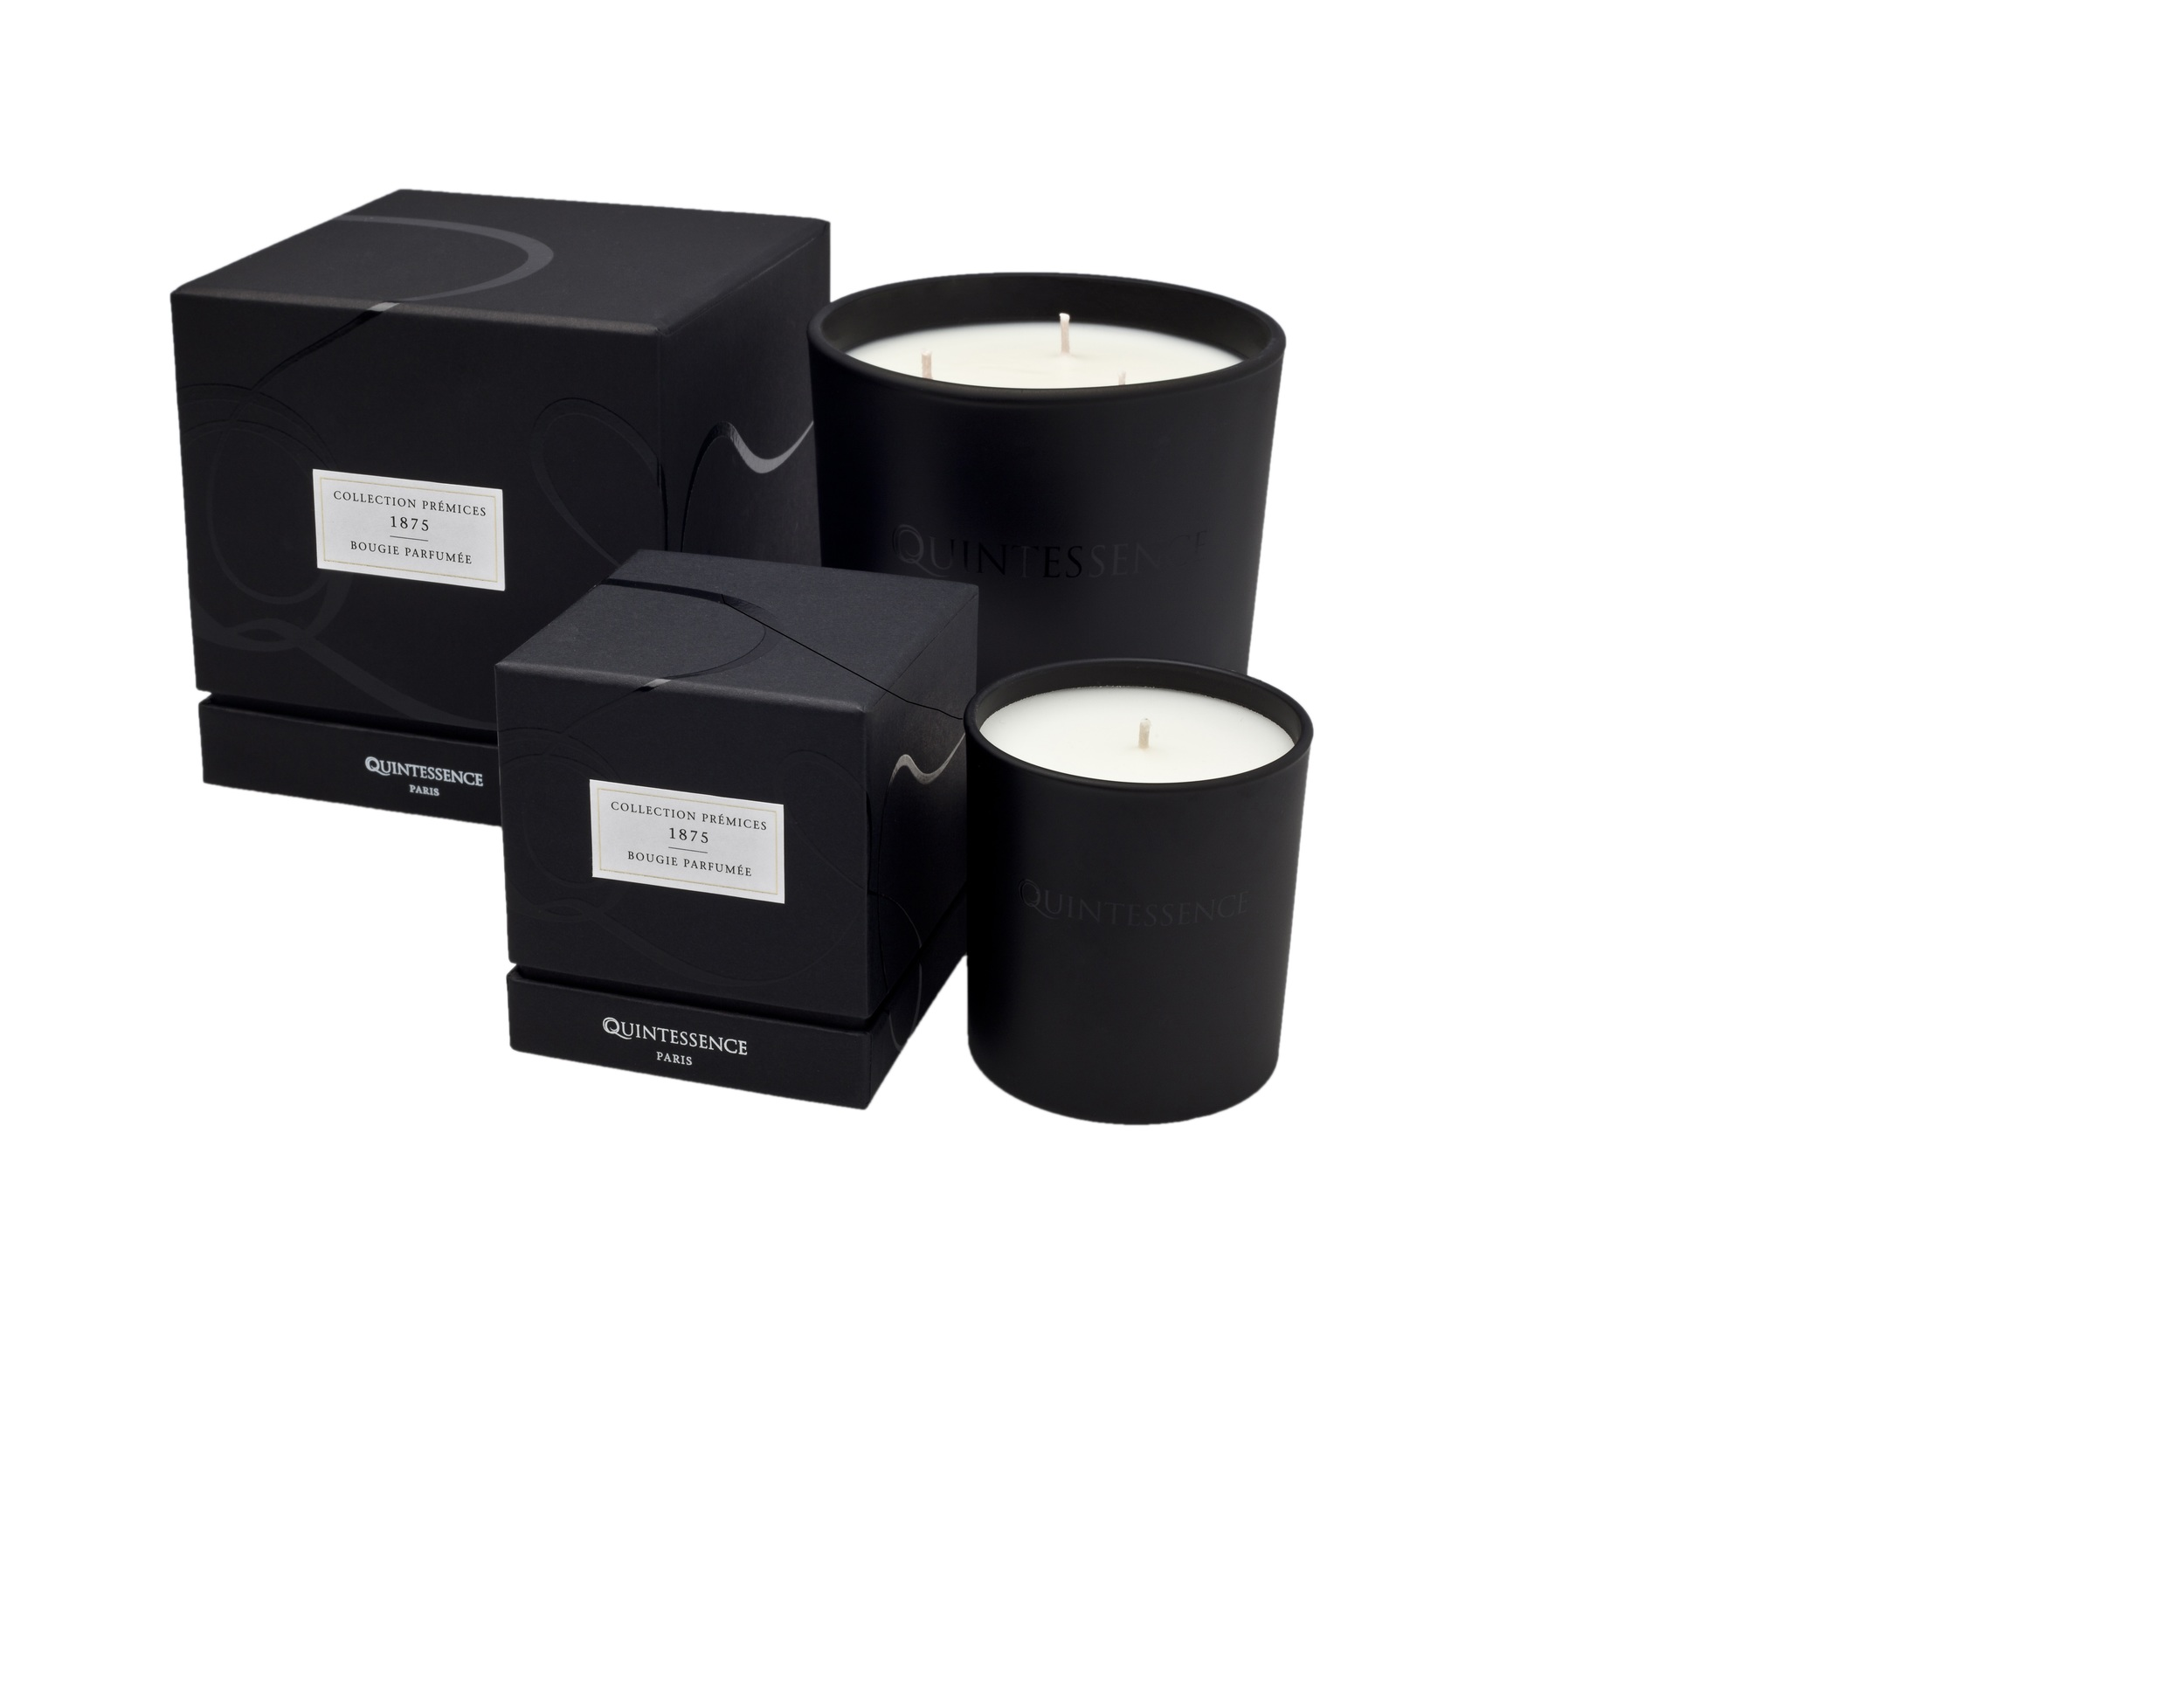 Quintessence-Paris candles in polished glass. Small $90, Large$250. Seasonal scents.